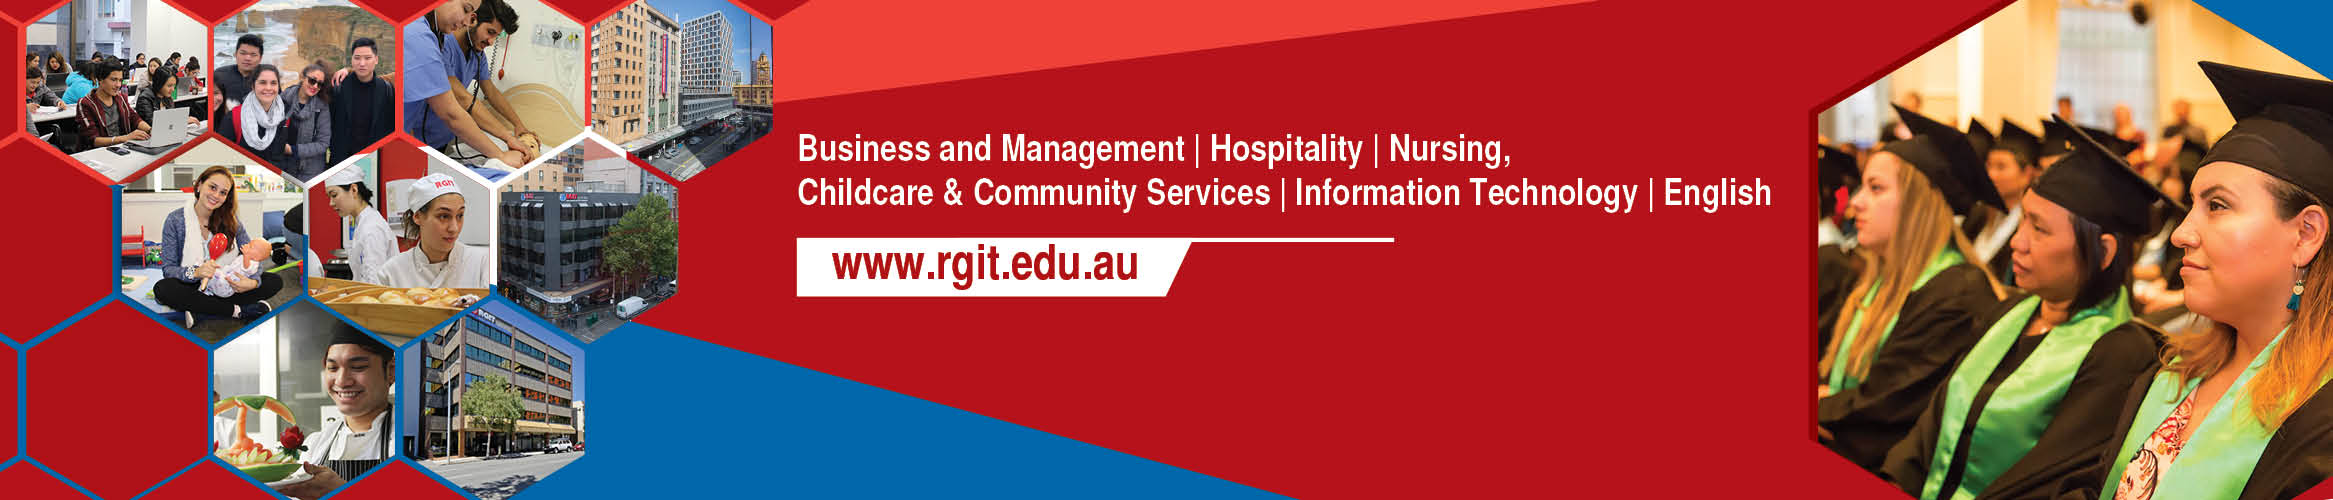 Royal Gurkhas Institute of Technology (RGIT) Australia banner